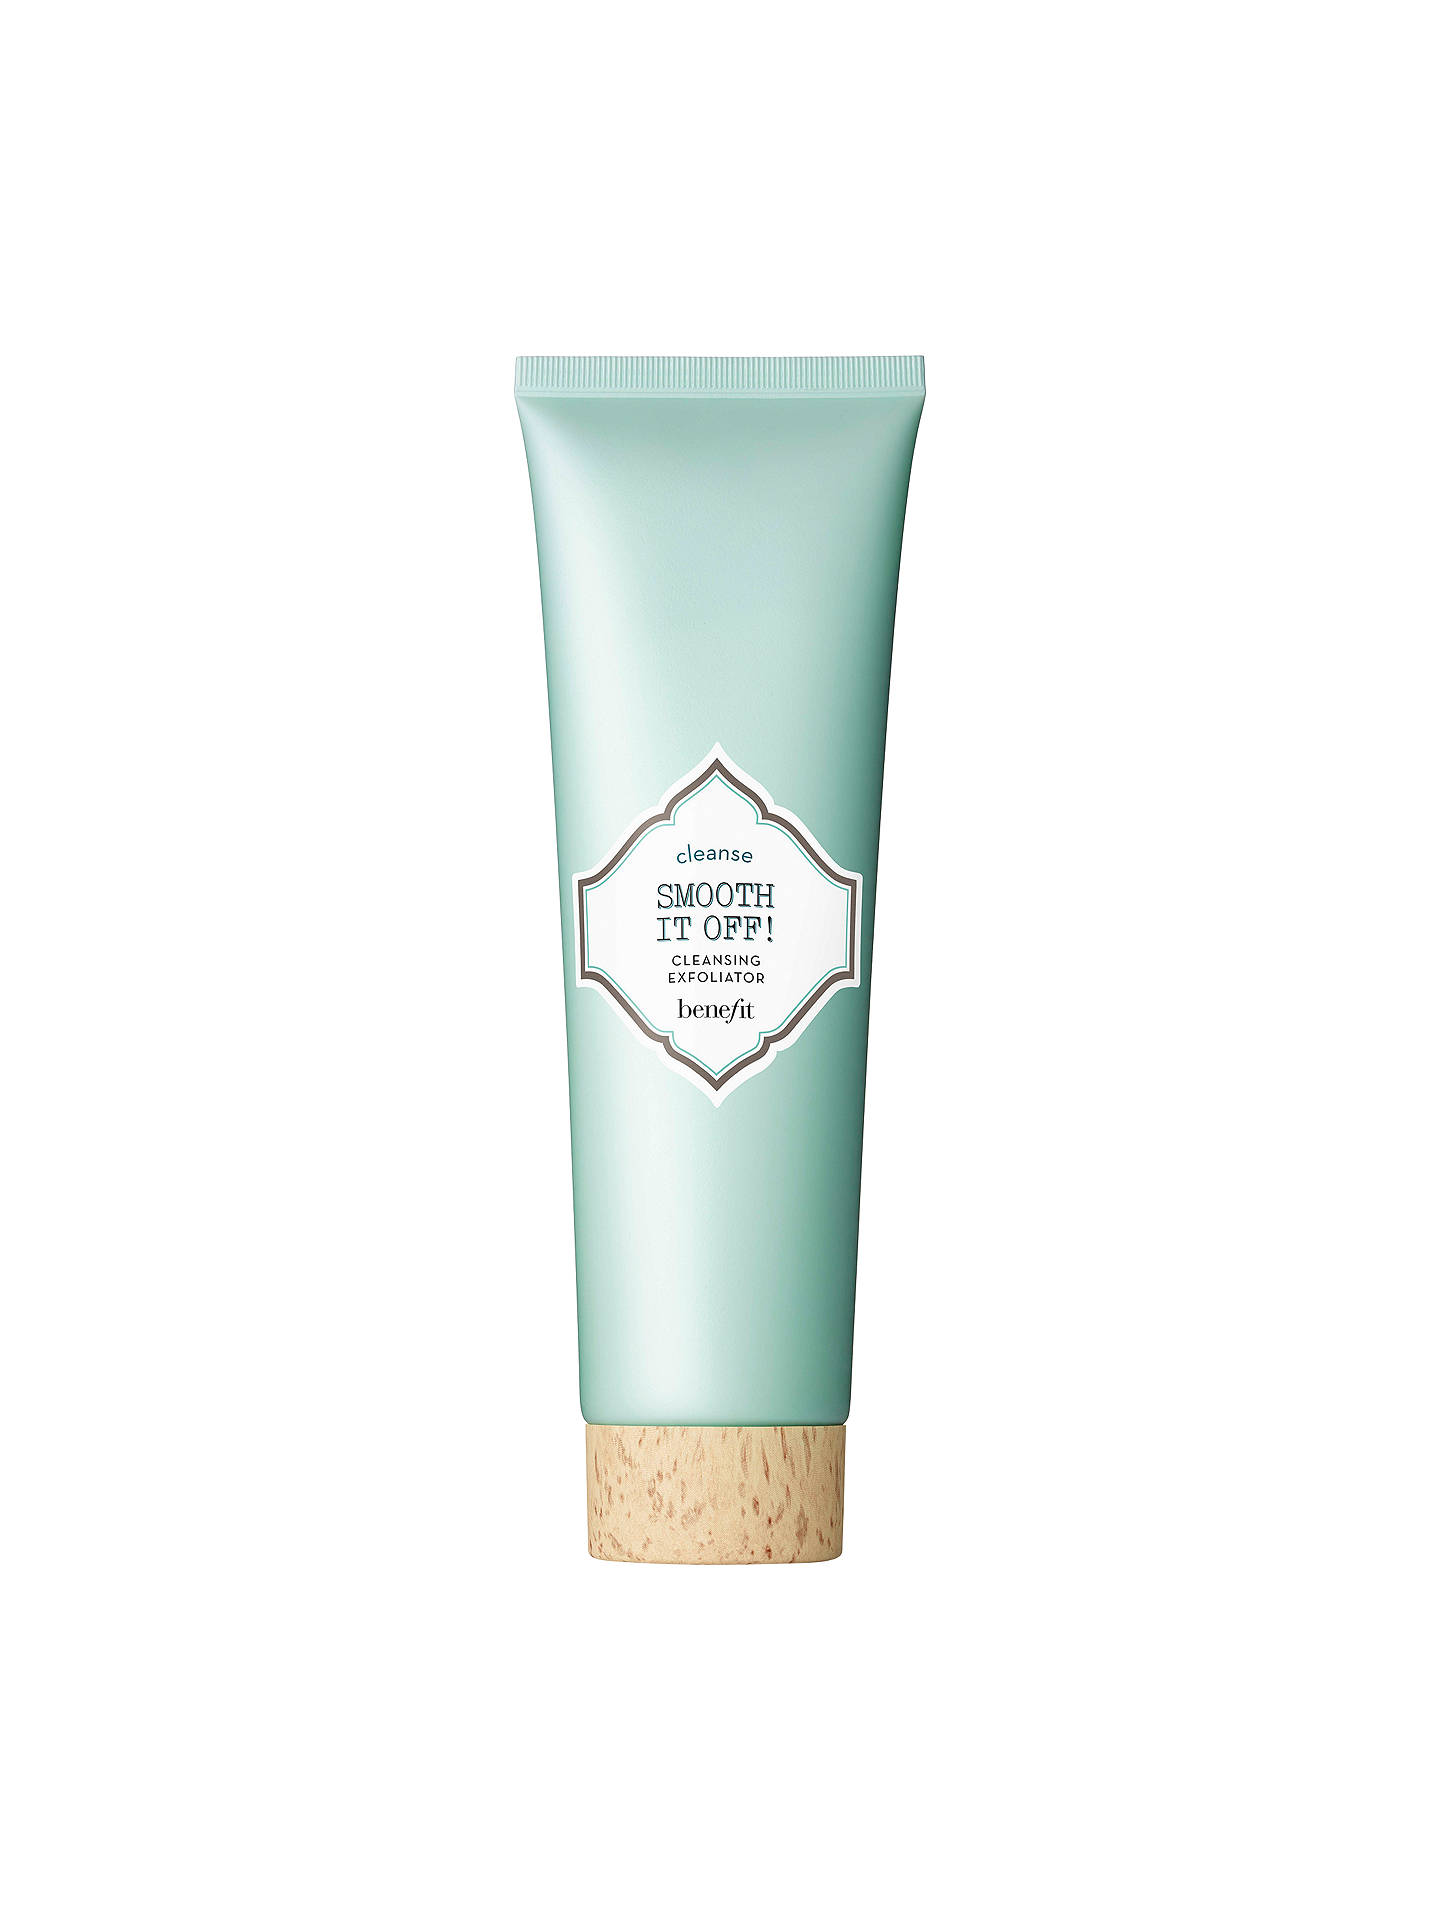 BuyBenefit Smooth It Off! Cleansing Exfoliator, 127.5g Online at johnlewis.com